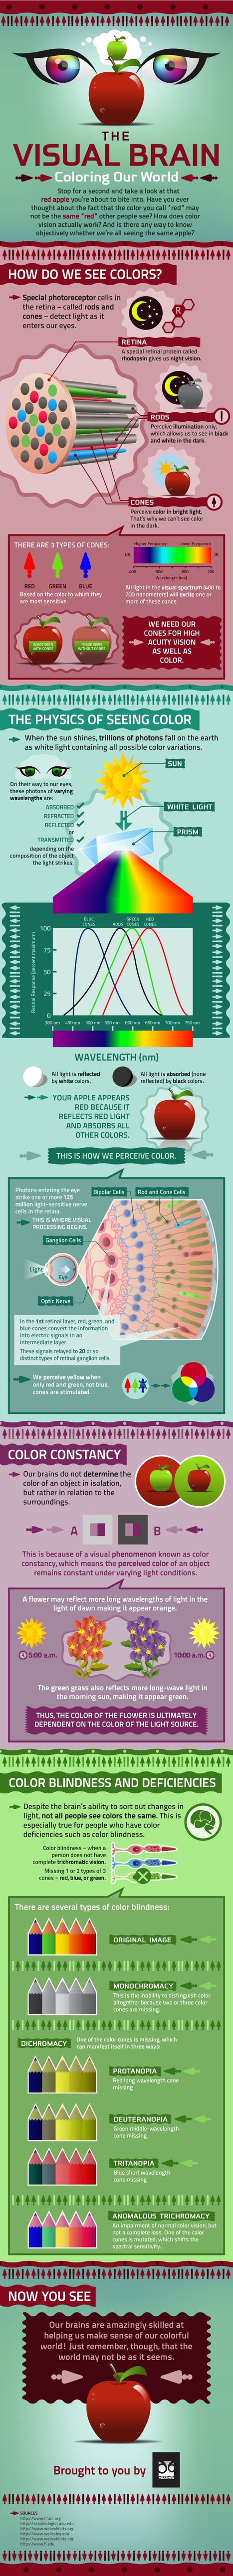 Mezzmer Blog » The Visual Brain- Coloring Our World | Infographics ideas for Education | Scoop.it